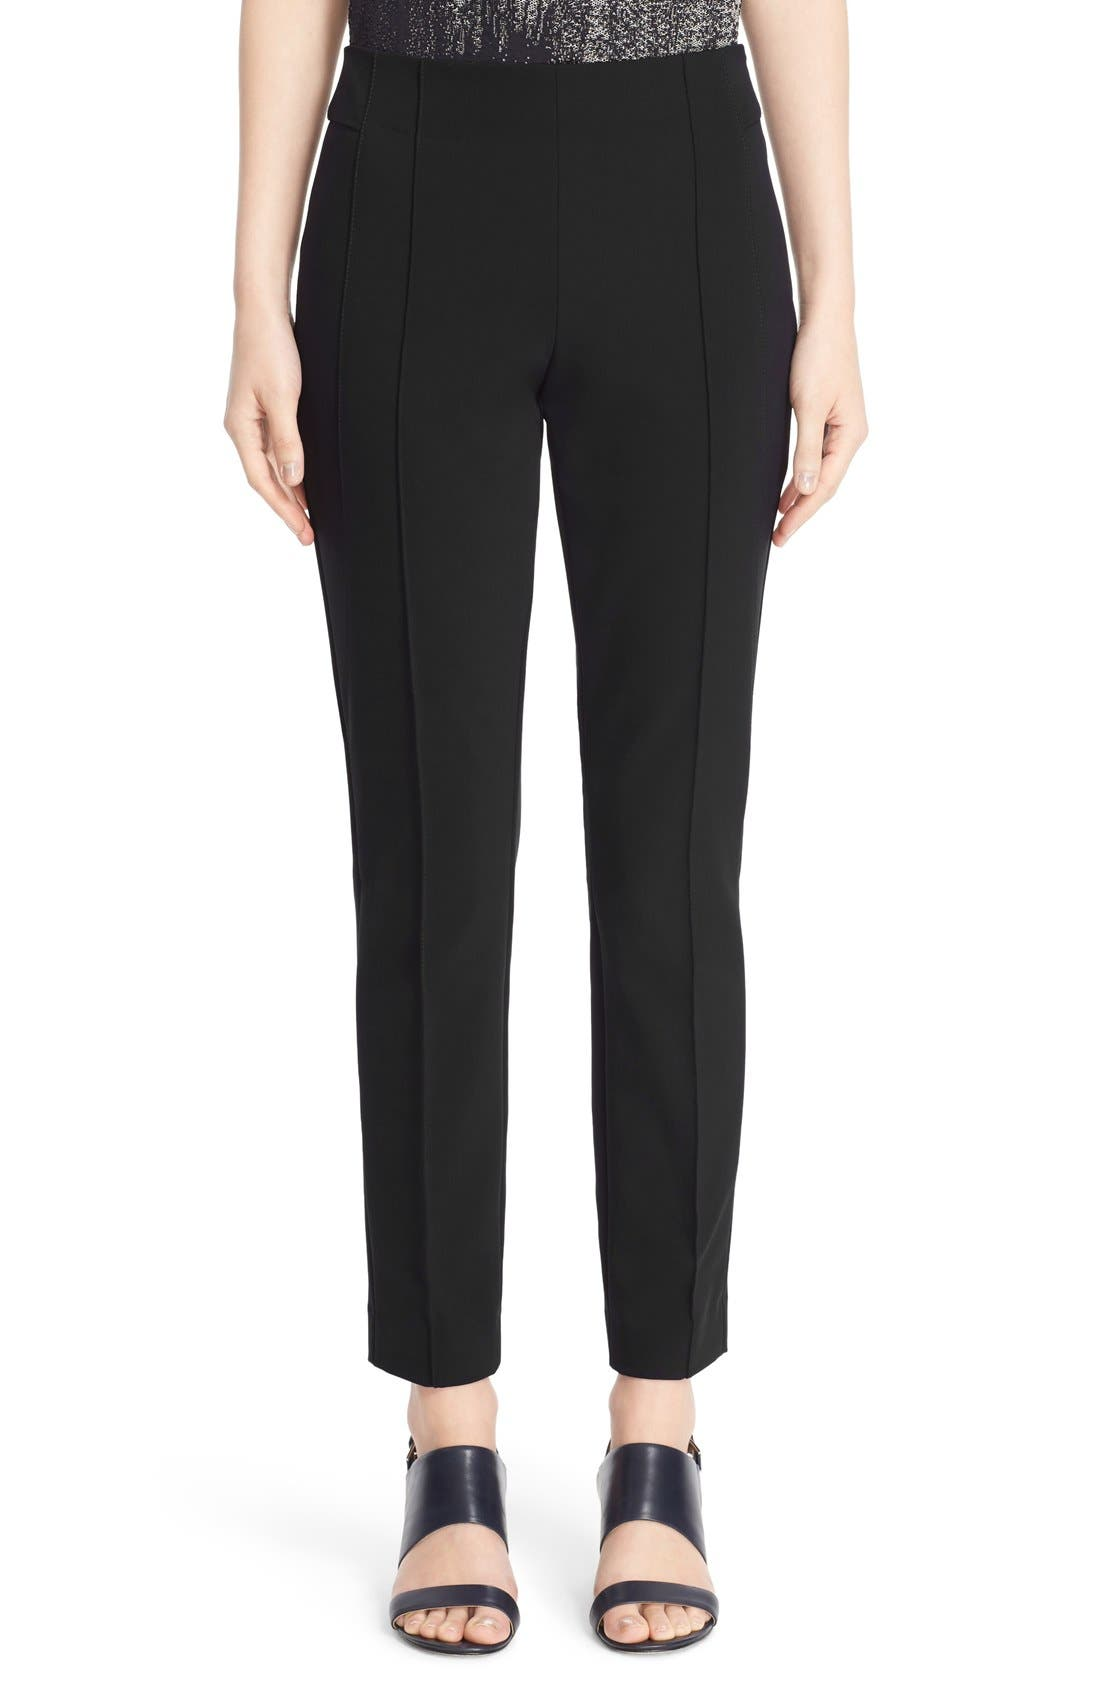 LAFAYETTE 148 NEW YORK Gramercy Acclaimed Stretch Pants